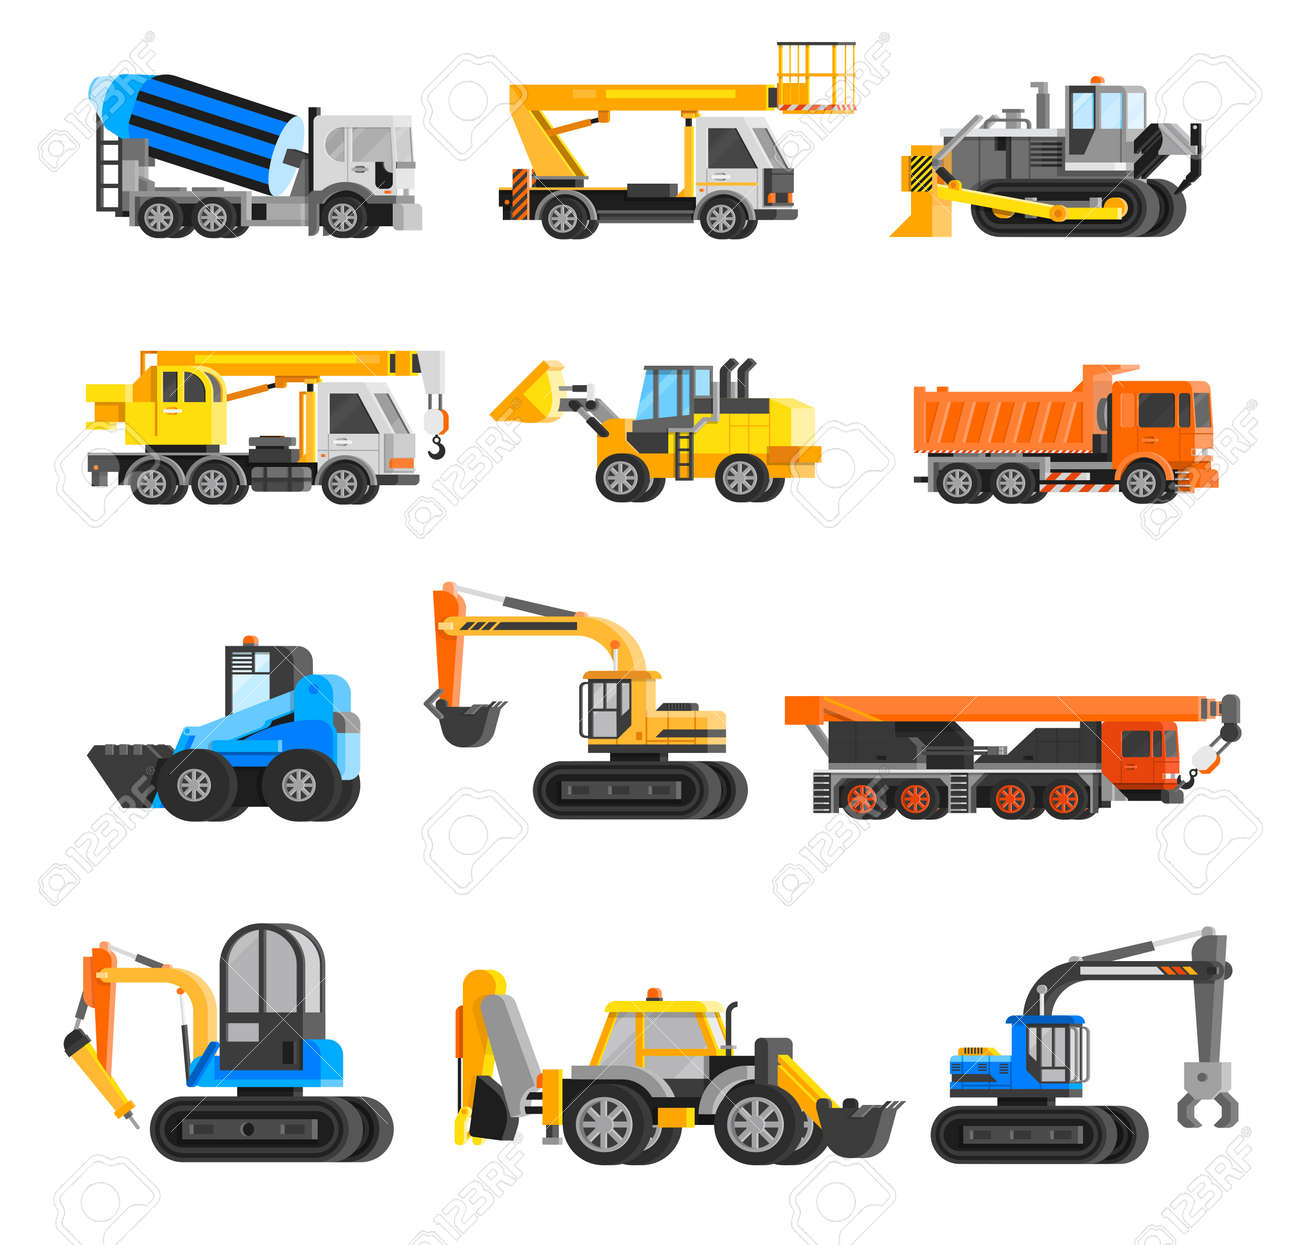 Construction machines orthogonal icons set with digger and crane flat isolated vector illustration - 165586464